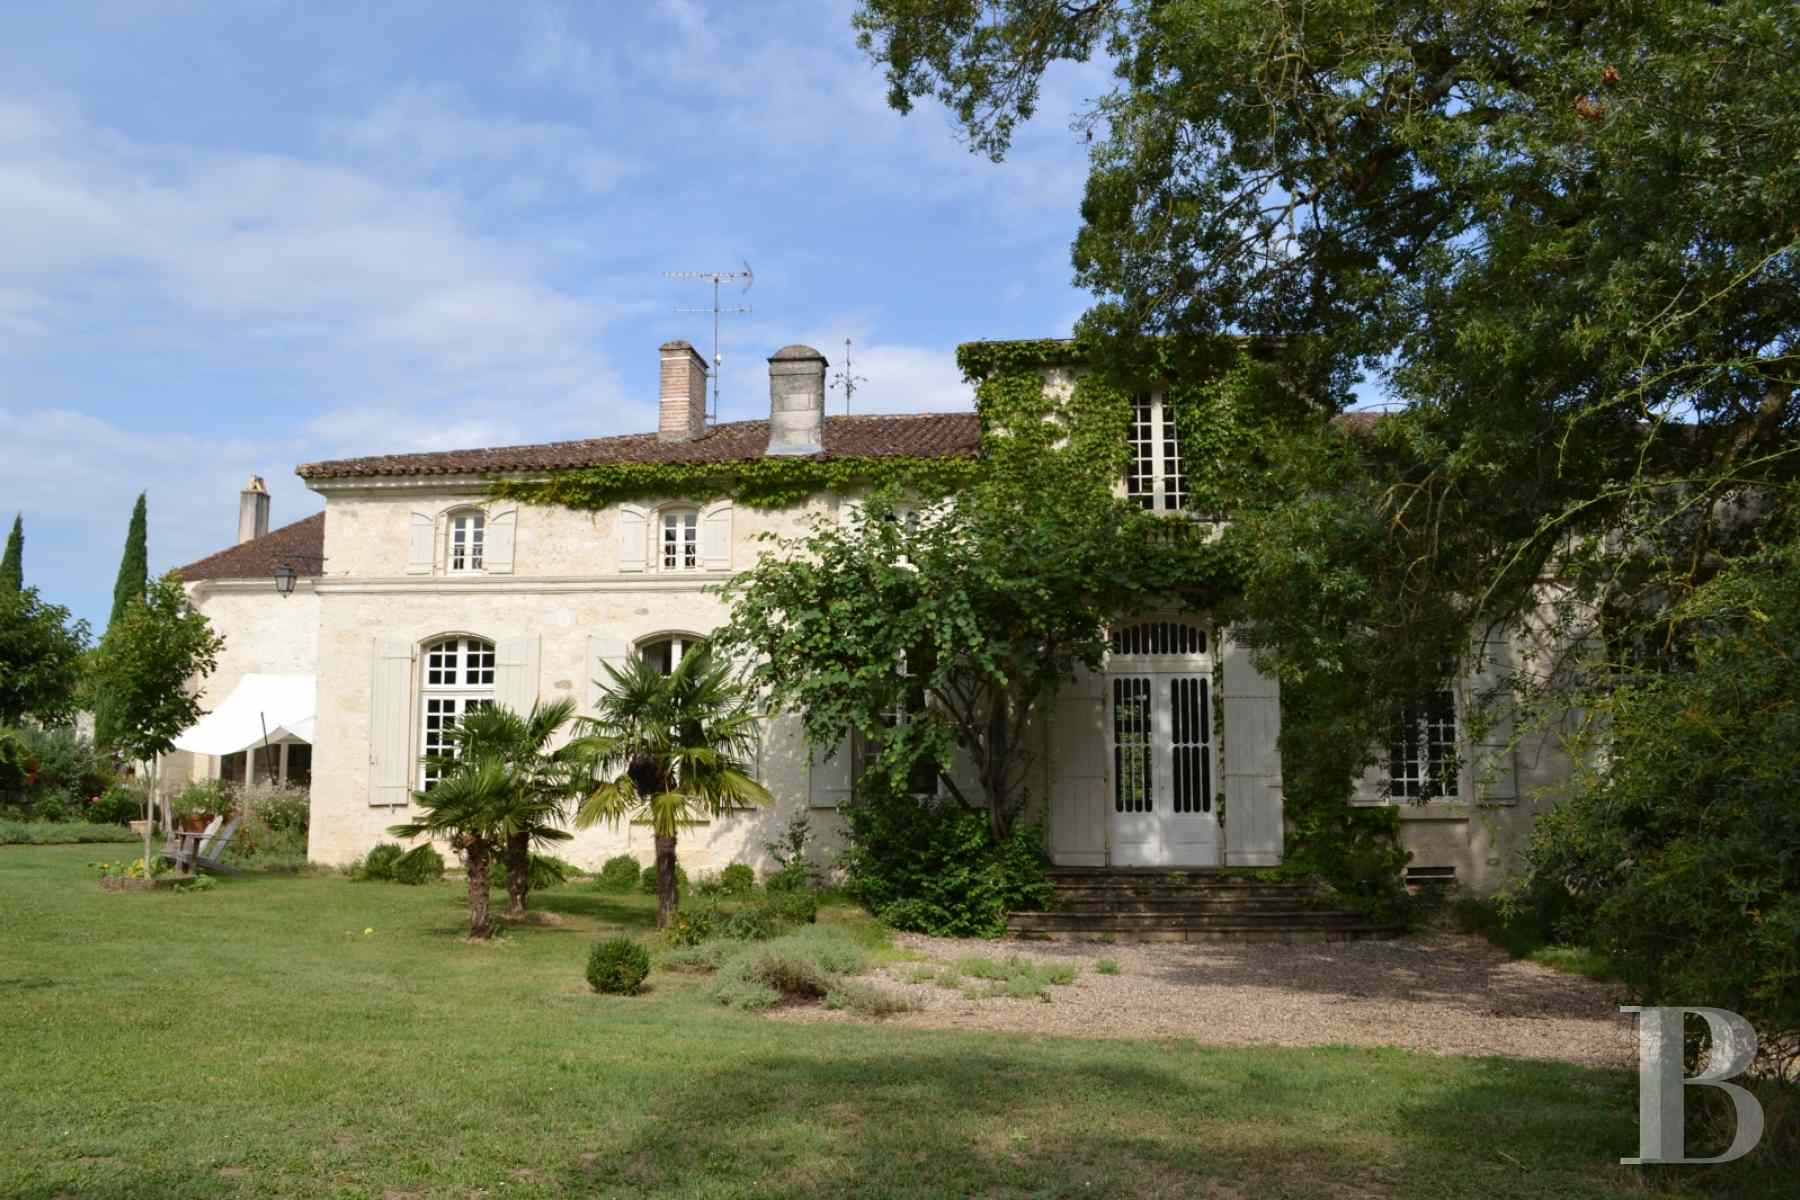 property for sale France aquitaine property 18th - 5 zoom